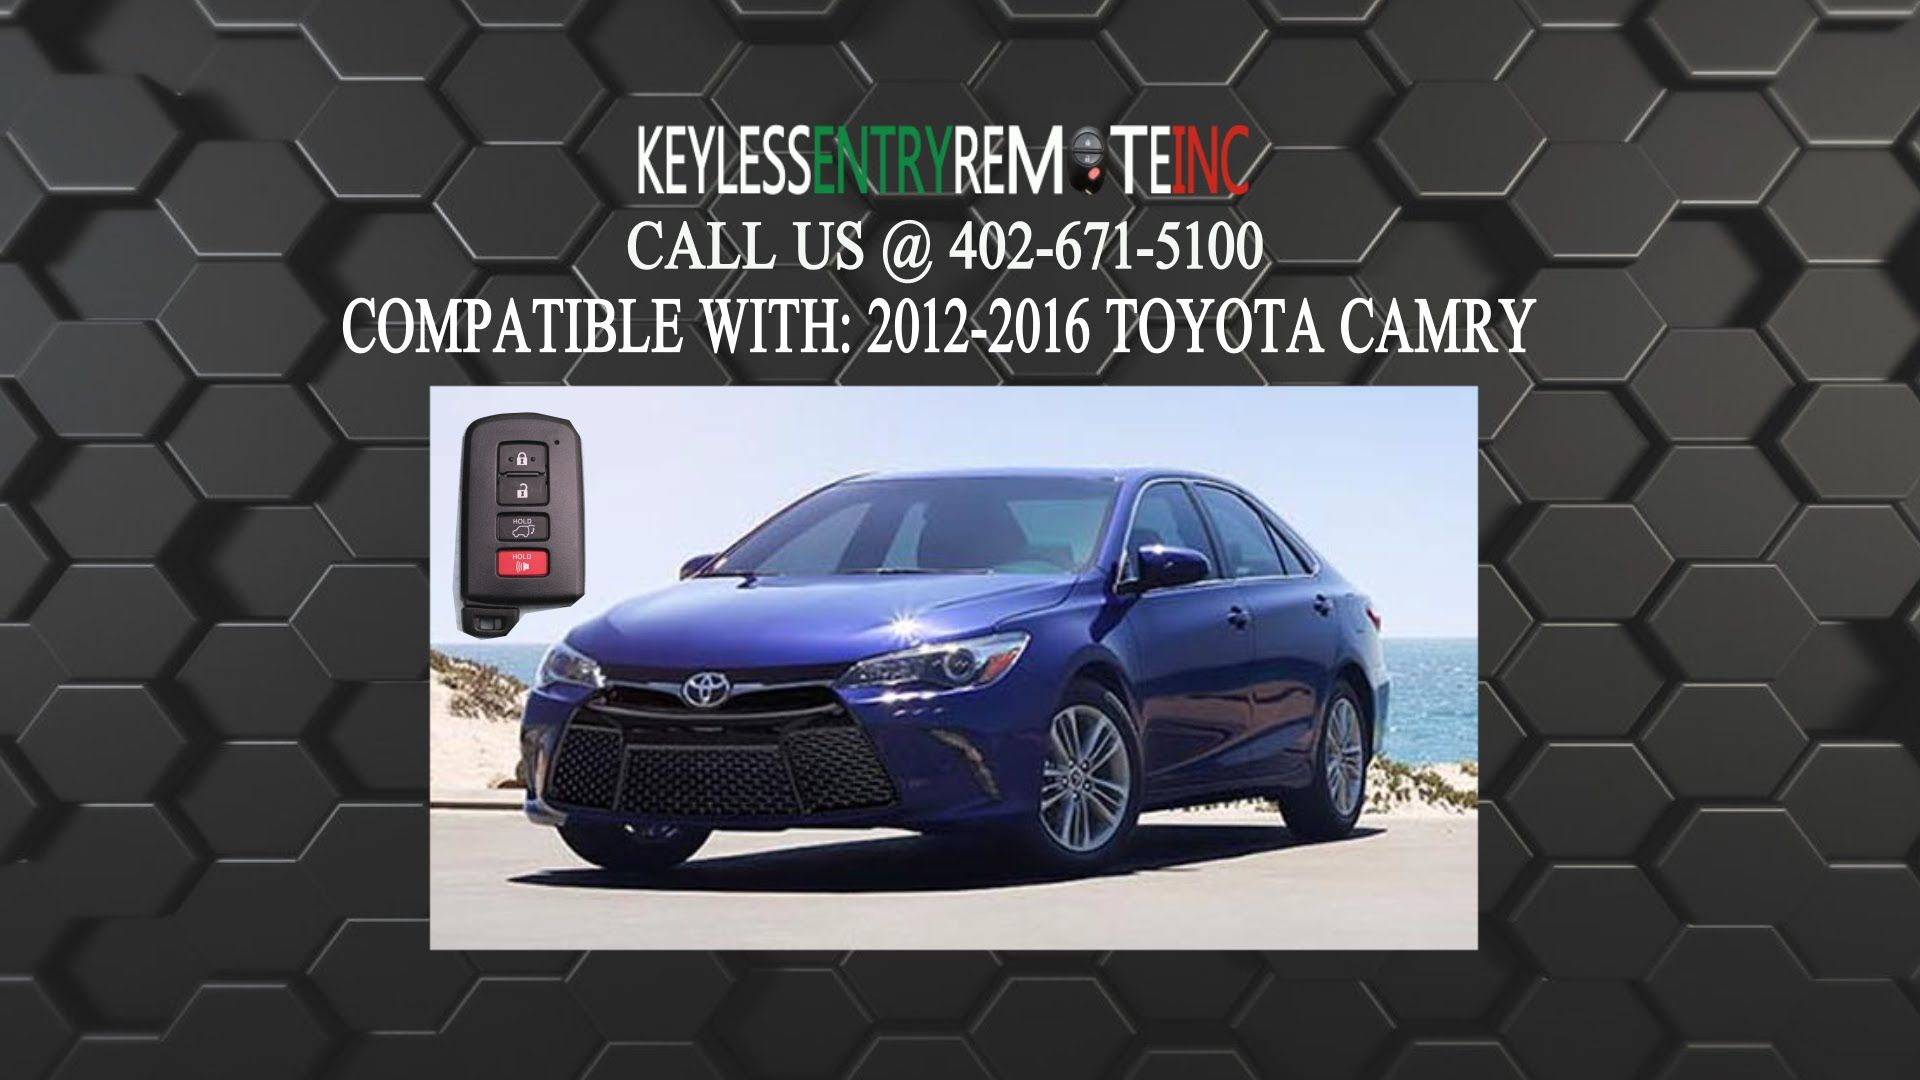 How To Replace A Toyota Camry Key Fob Battery 2012 2016